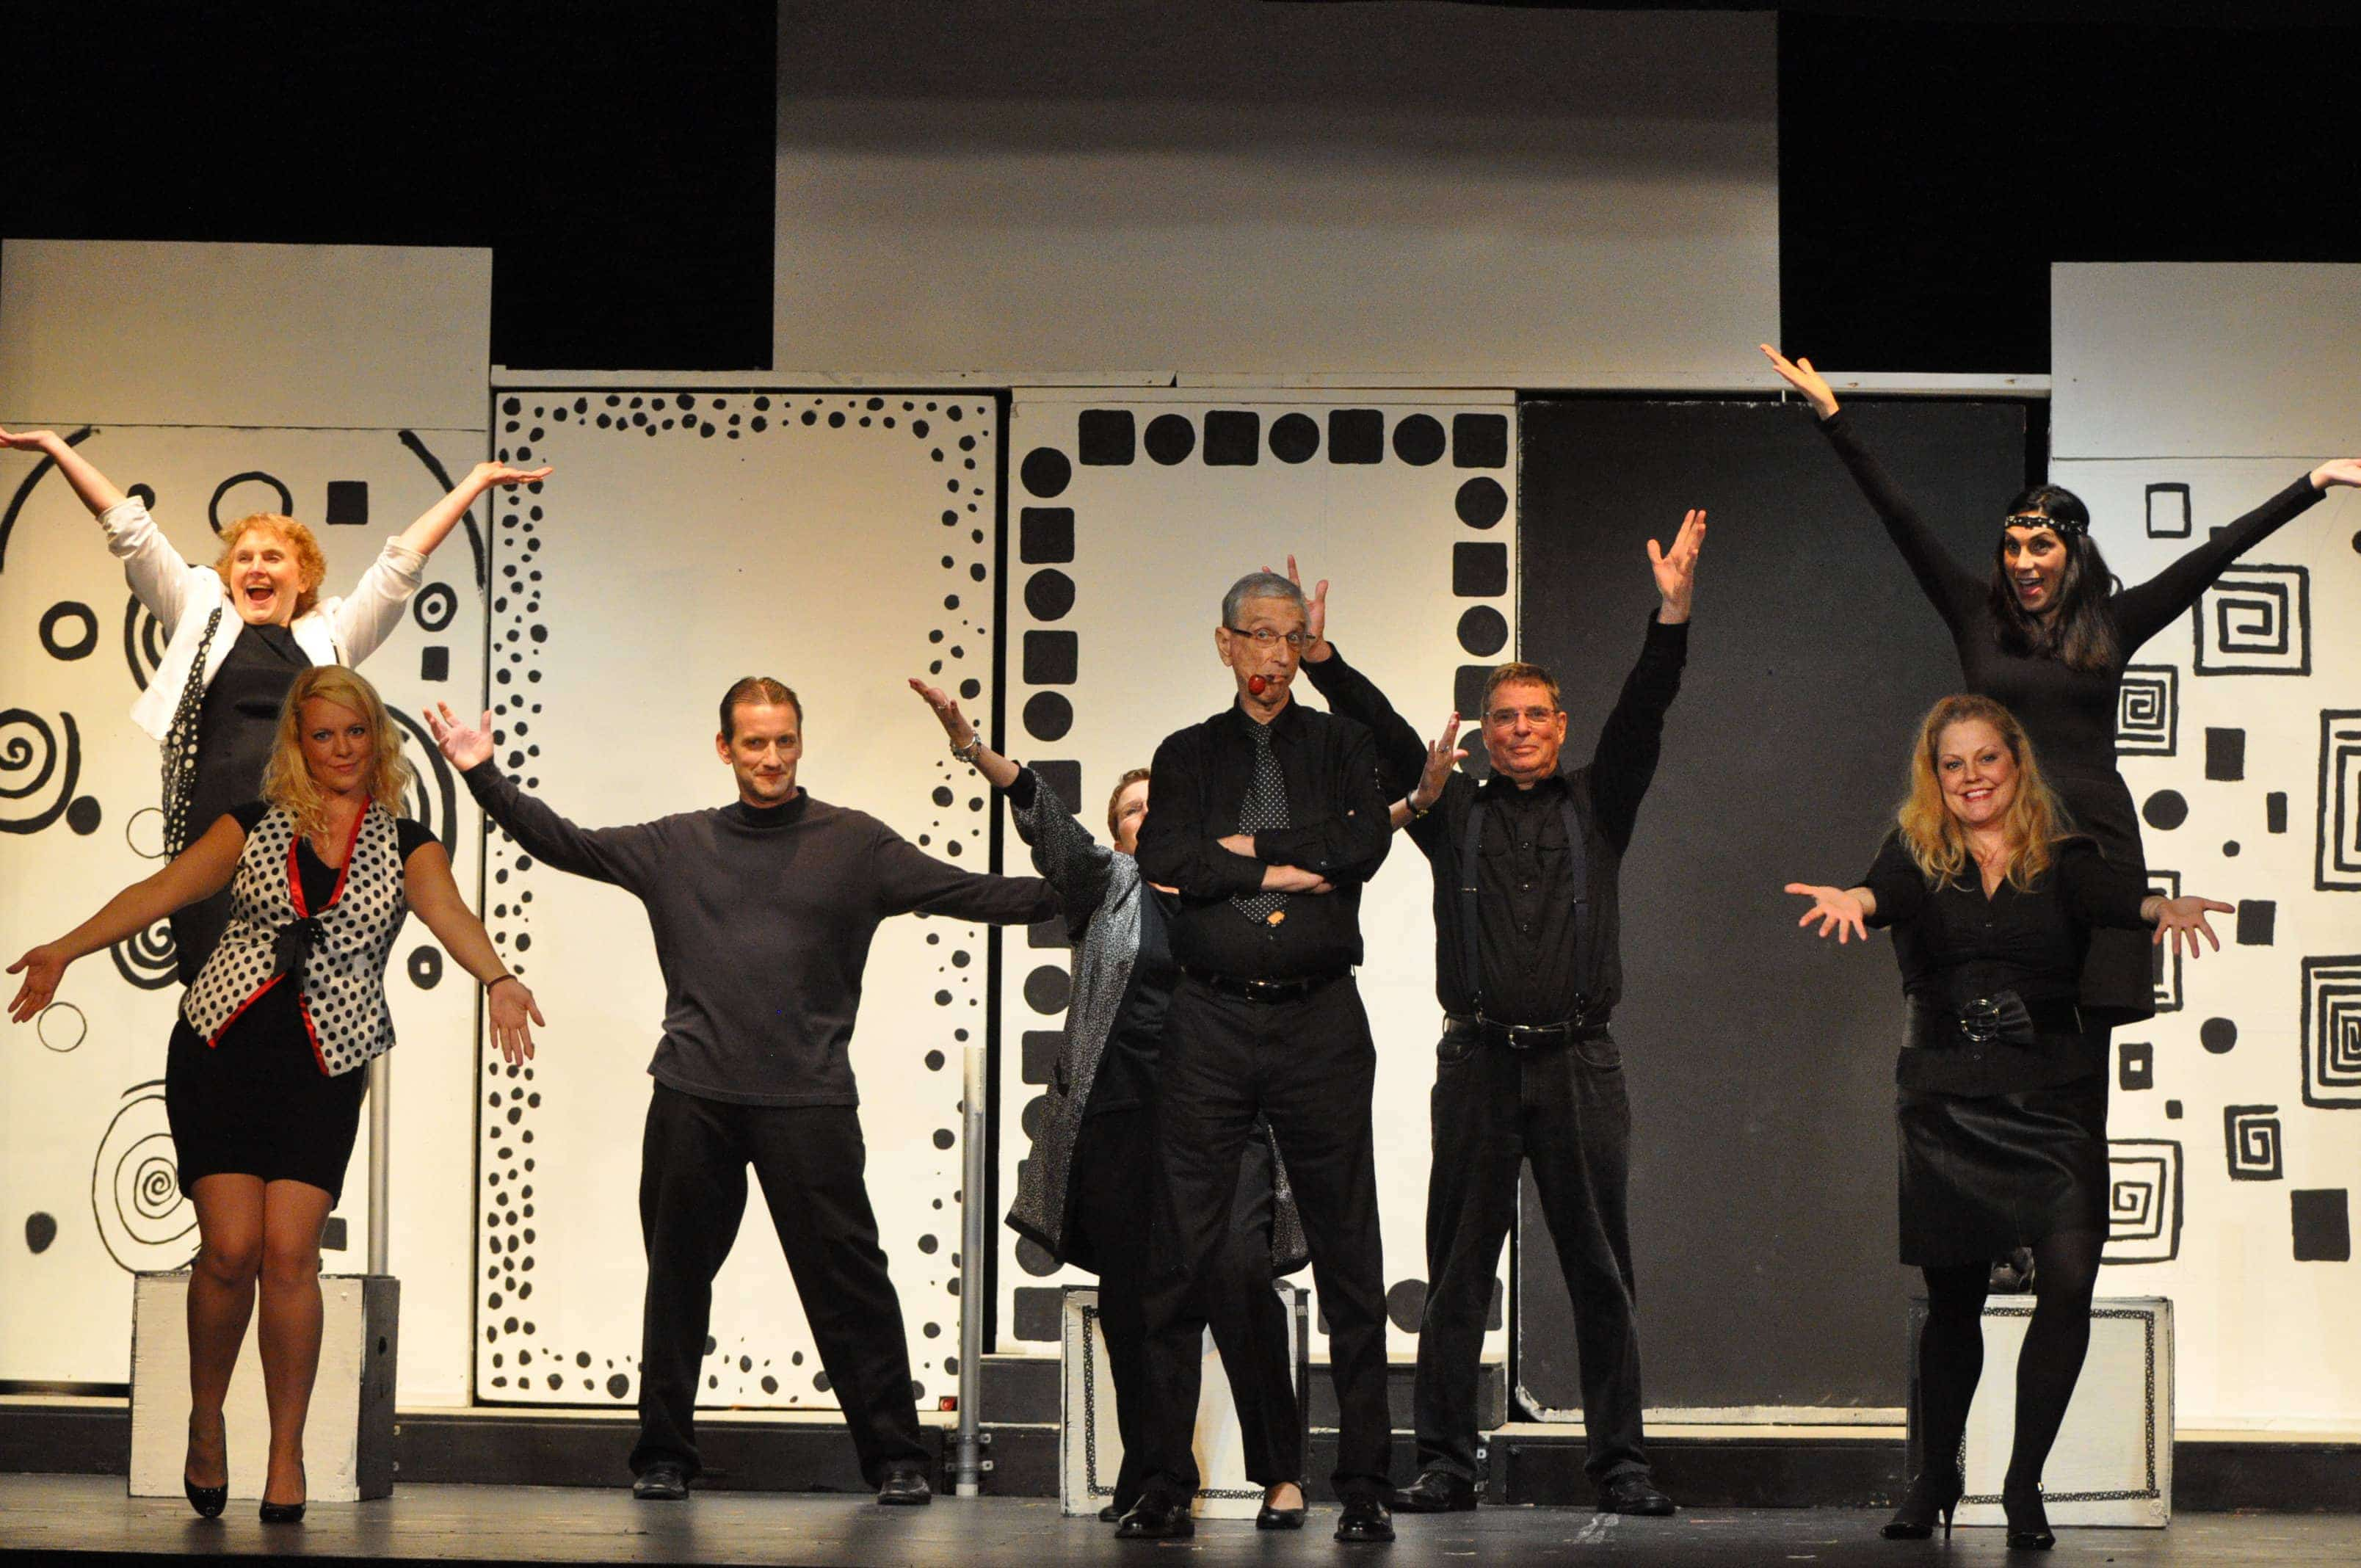 Ensemble from 'A Thurber Carnival' kick it up. From Left to Right back row: Judy Butler, Kevin Walker, Janice Zucker, Bill Doyle, and Sue Schaffel. From Left to Right front row: Amanda Hine, John Burns, and Jocelyn Steiner. Photo by Matthew Randall.